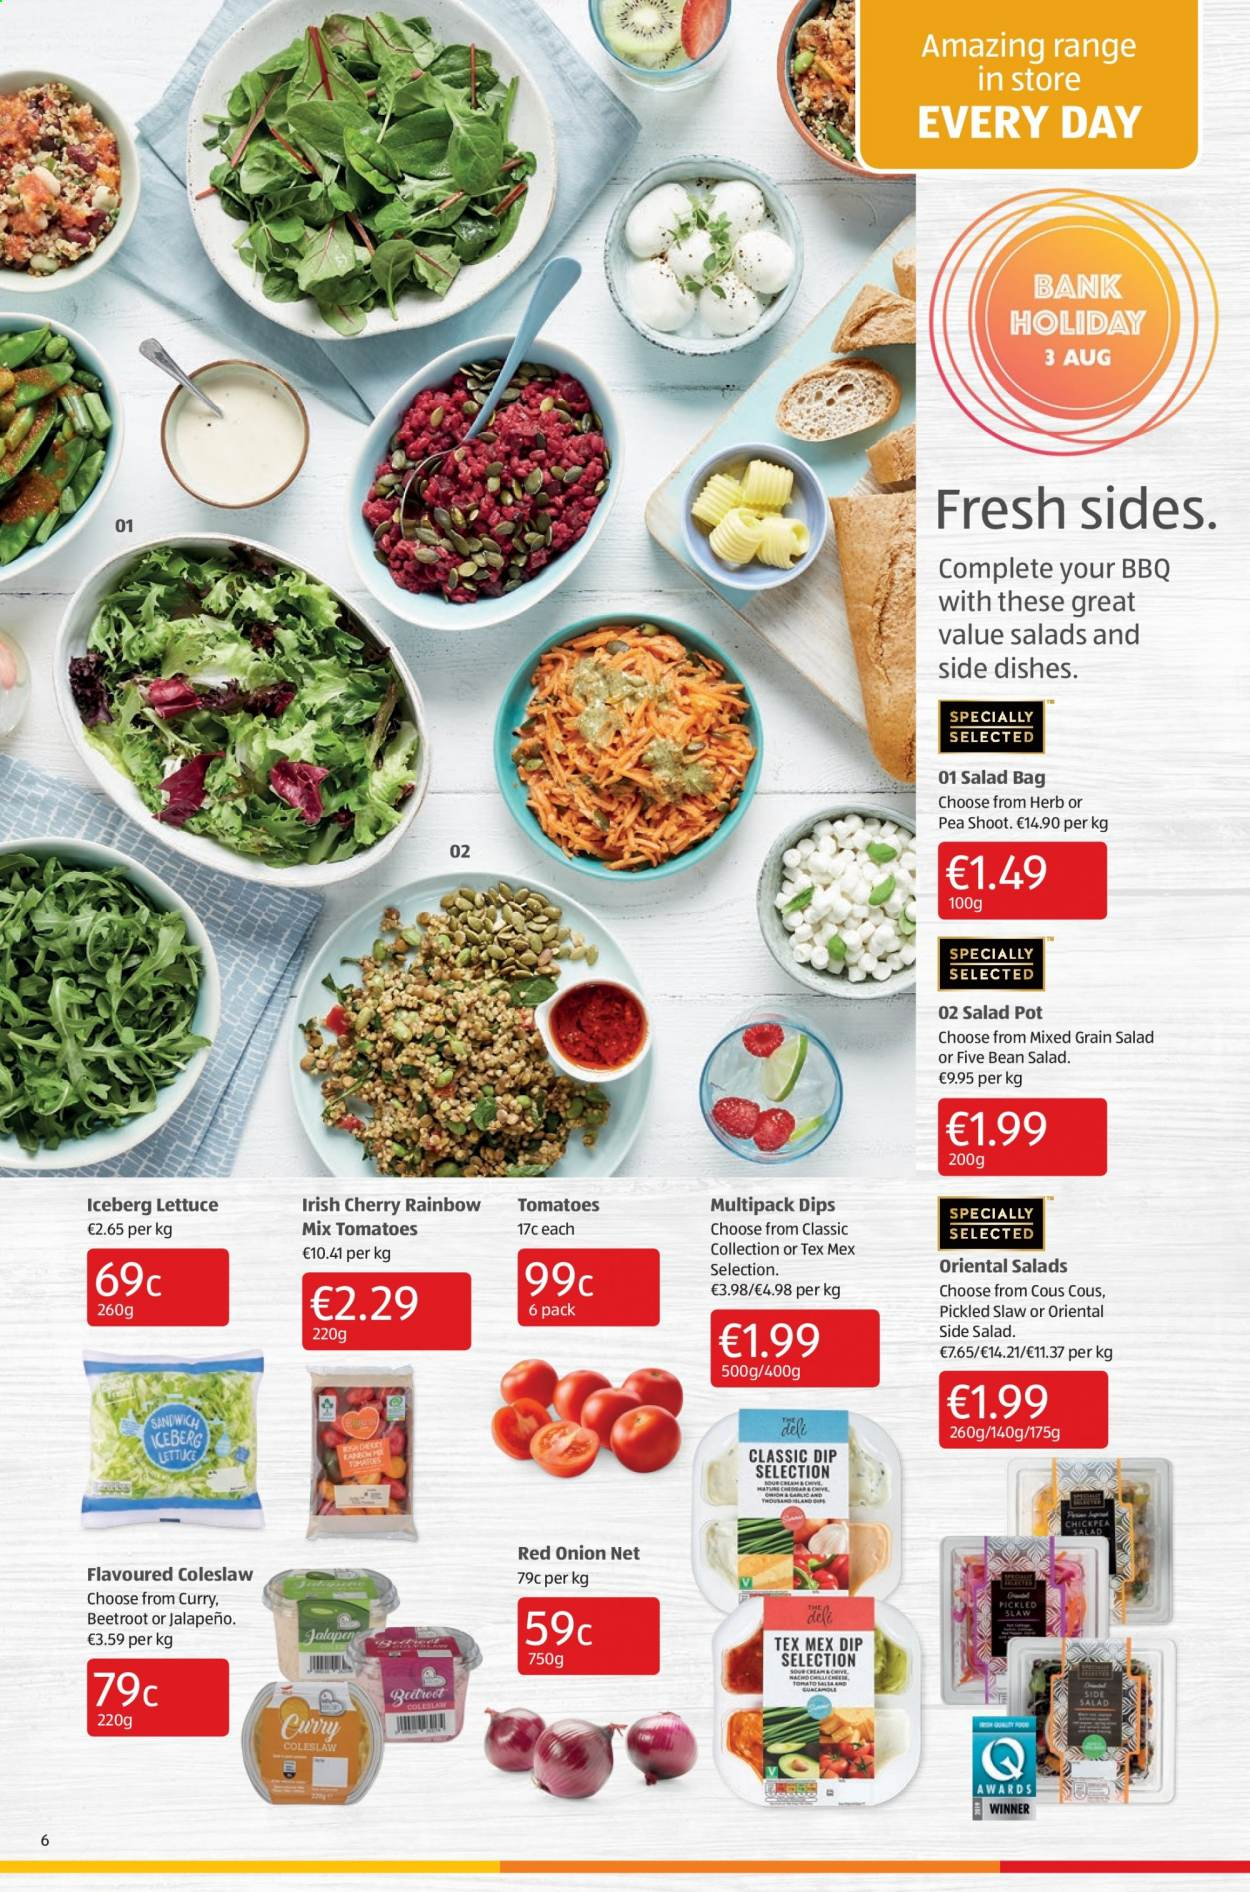 Aldi offer  - 6.8.2020 - 9.8.2020 - Sales products - bag, coleslaw, tomatoes, pot, onion, lettuce, sandwich, salsa, salad, herb, curry, guacamole, jalapeno, tomato, barbecue, herbs, beetroot. Page 6.